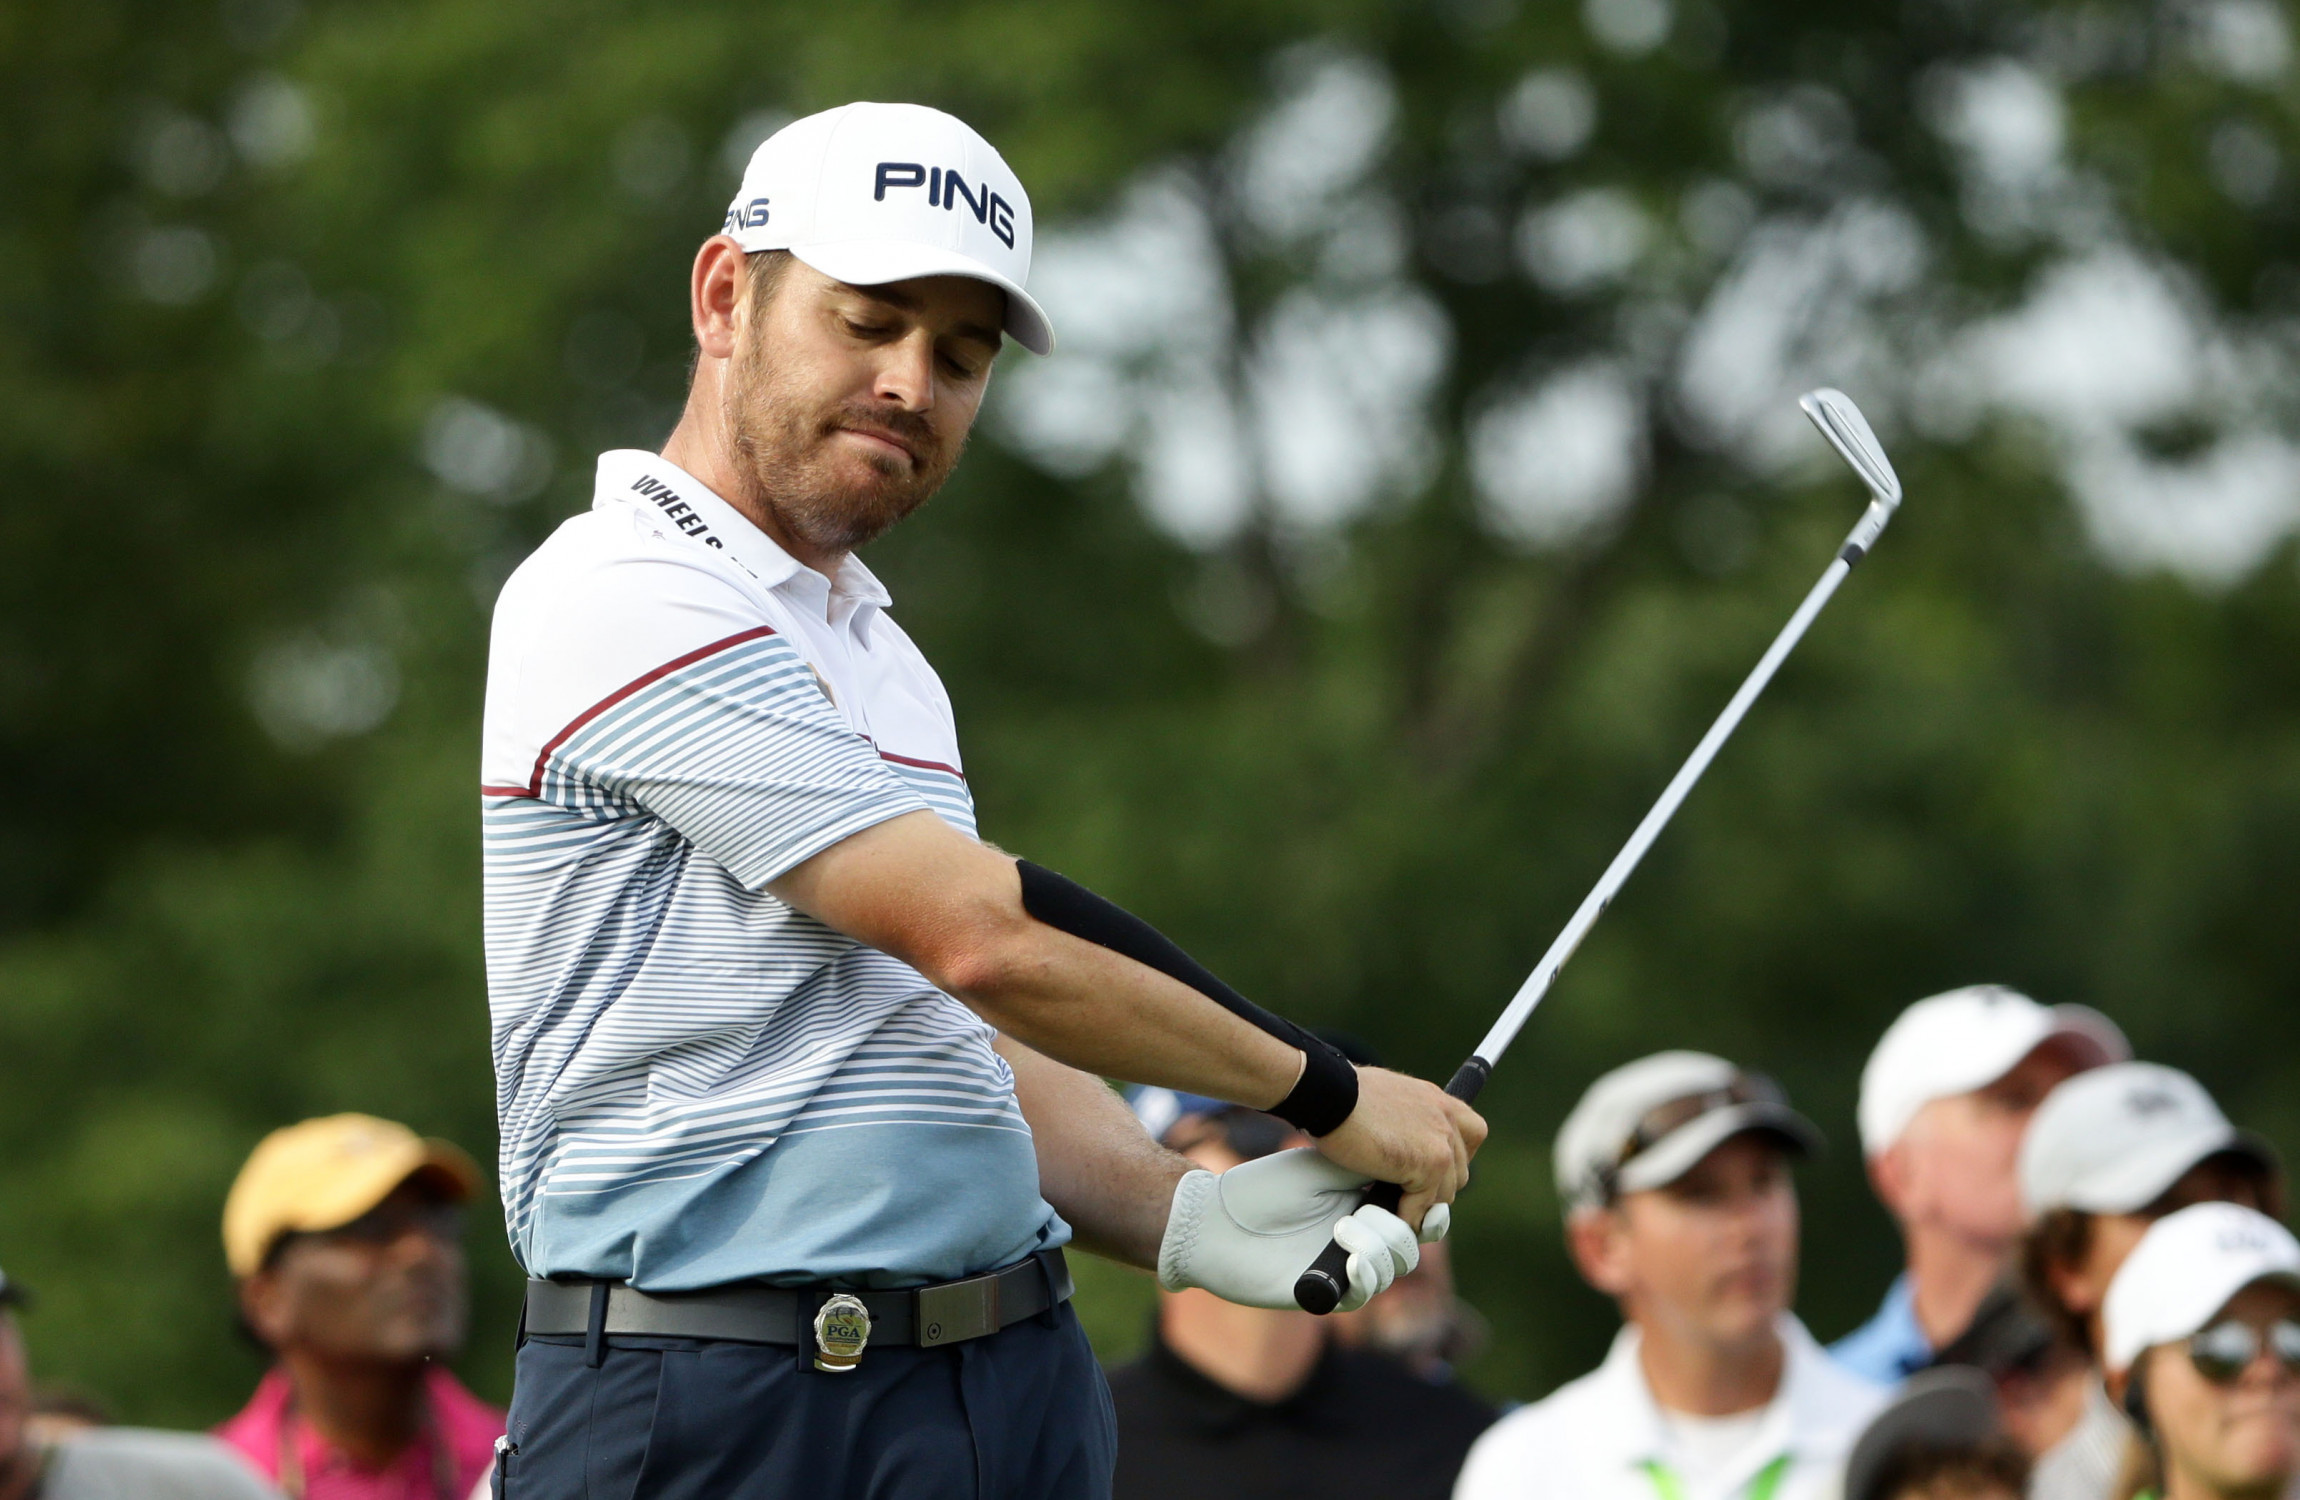 Pro golfer withdraws from tournament after freakish  finger injury